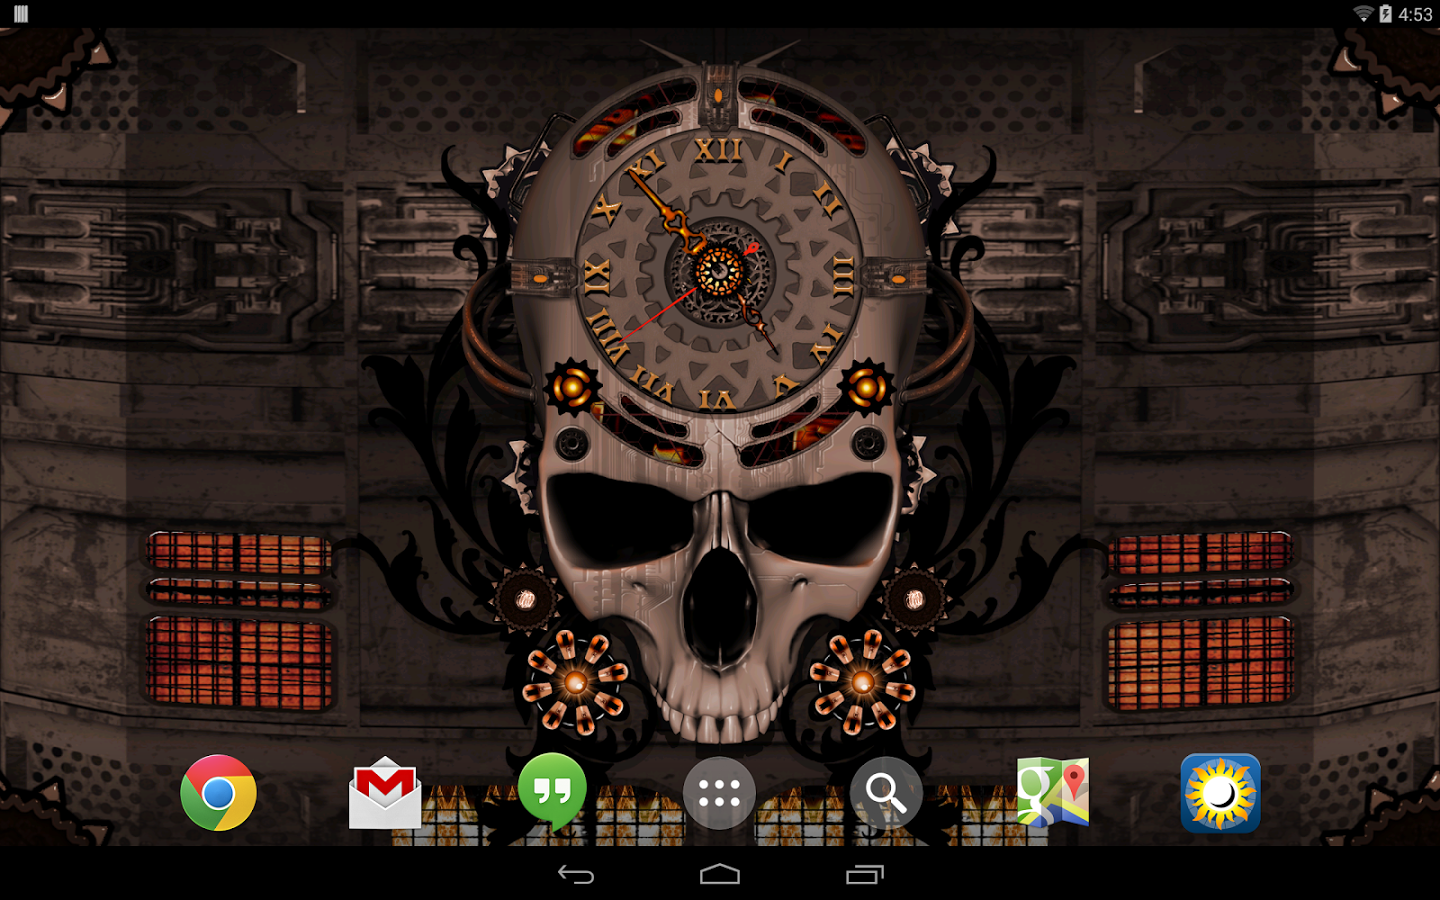 50+ Steampunk Wallpaper for Android on WallpaperSafari